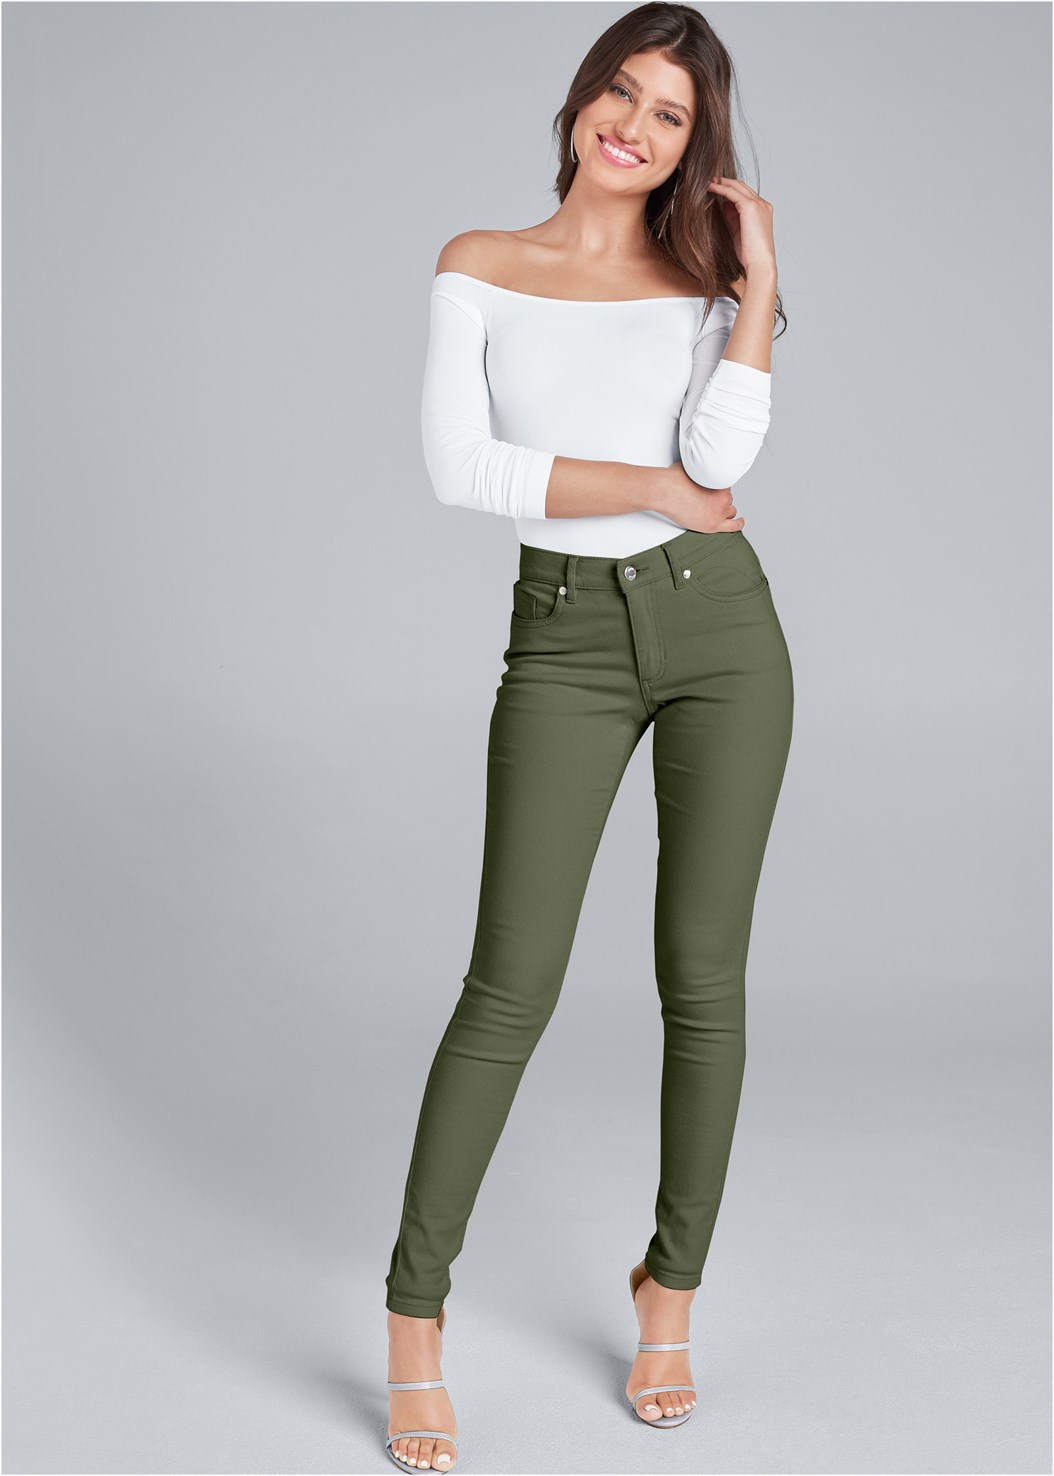 Mid Rise Color Skinny Jeans,Off The Shoulder Top,High Heel Strappy Sandals,Ankle Strap Heels